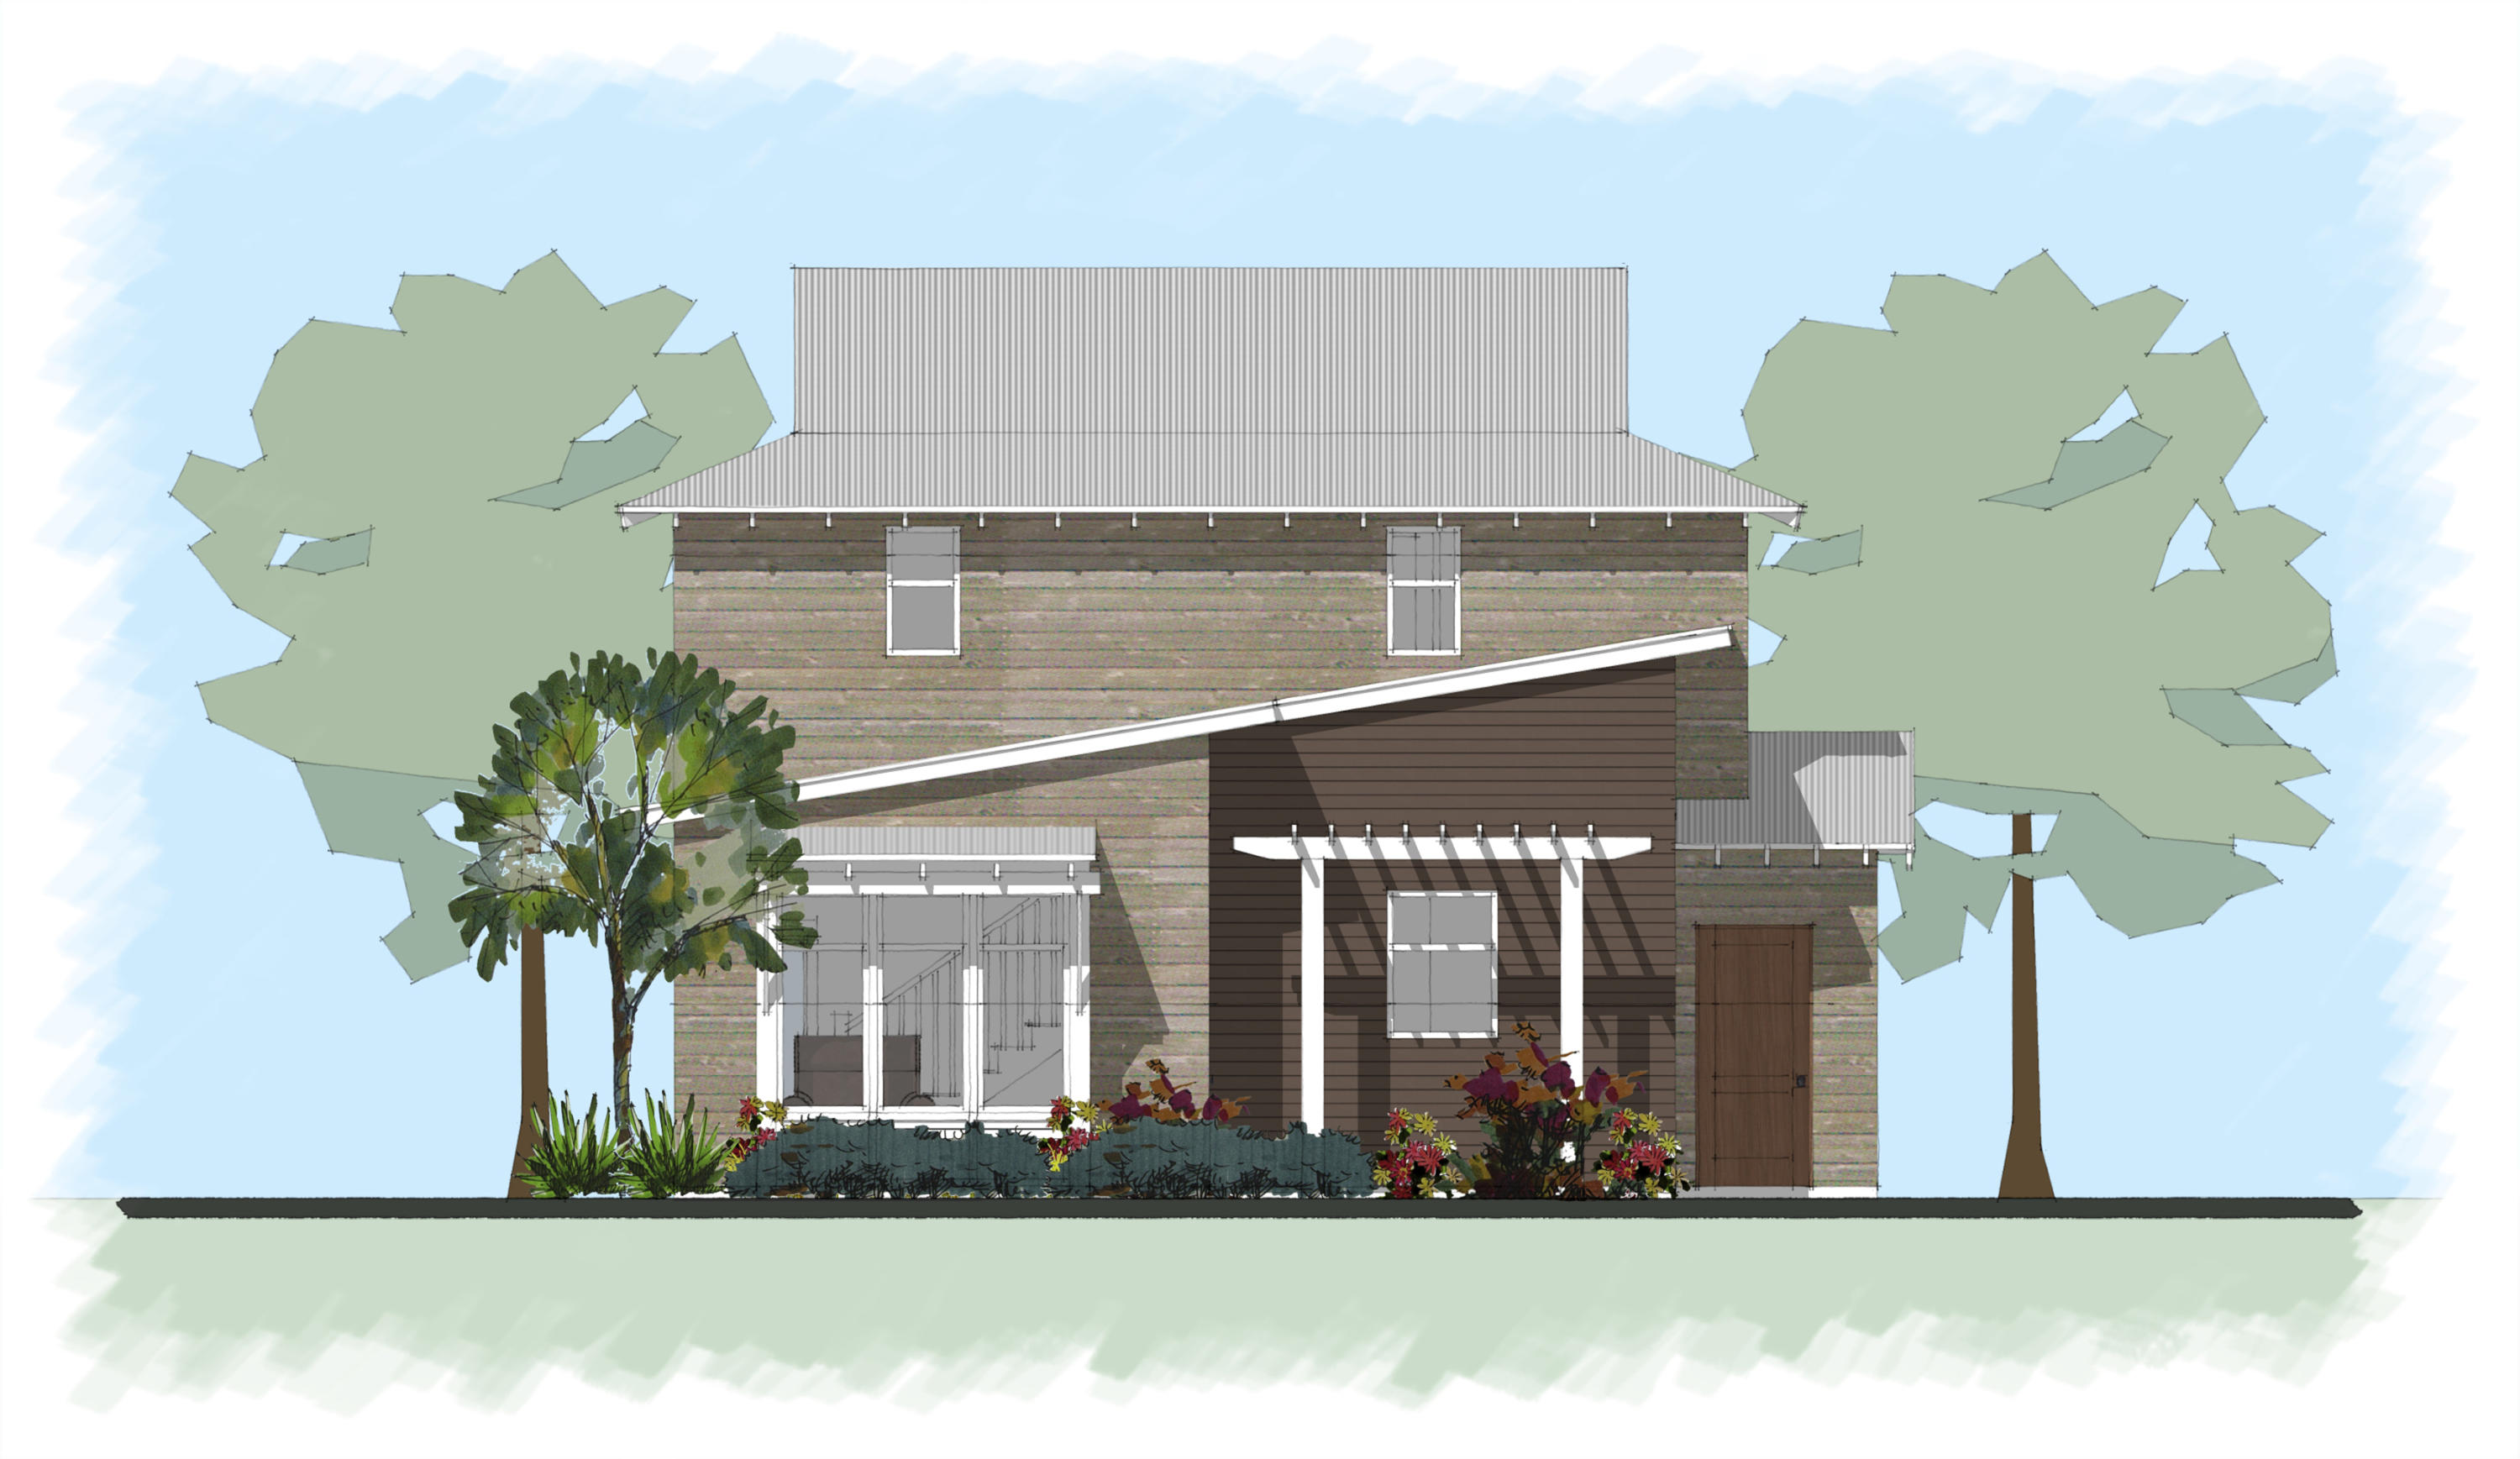 $15,725 preconstruction incentive discount will be yours if you are one of the first 5 Buyers in Eden's Landing. ONLY 3 discounts are left! Don't miss out! You can choose to apply $15,725 (5% of list price) to the Purchase Price, or cover your closing costs. But don't delay! Enjoy all the advantages of South Walton's Next Generation Homes.Brand-new homes in Historic Point Washington, thoughtfully designed for today's families.Enjoy the privileges of living the good life as a local. Open floor plan and outdoor ''rooms'' are part of the way you want to live NOW. The Morgan floor plan has flexibility built in. The en suite Master Bedroom is on the first level. The second level offers a second room for which you can use the use -- living, bedroom, media room, etc